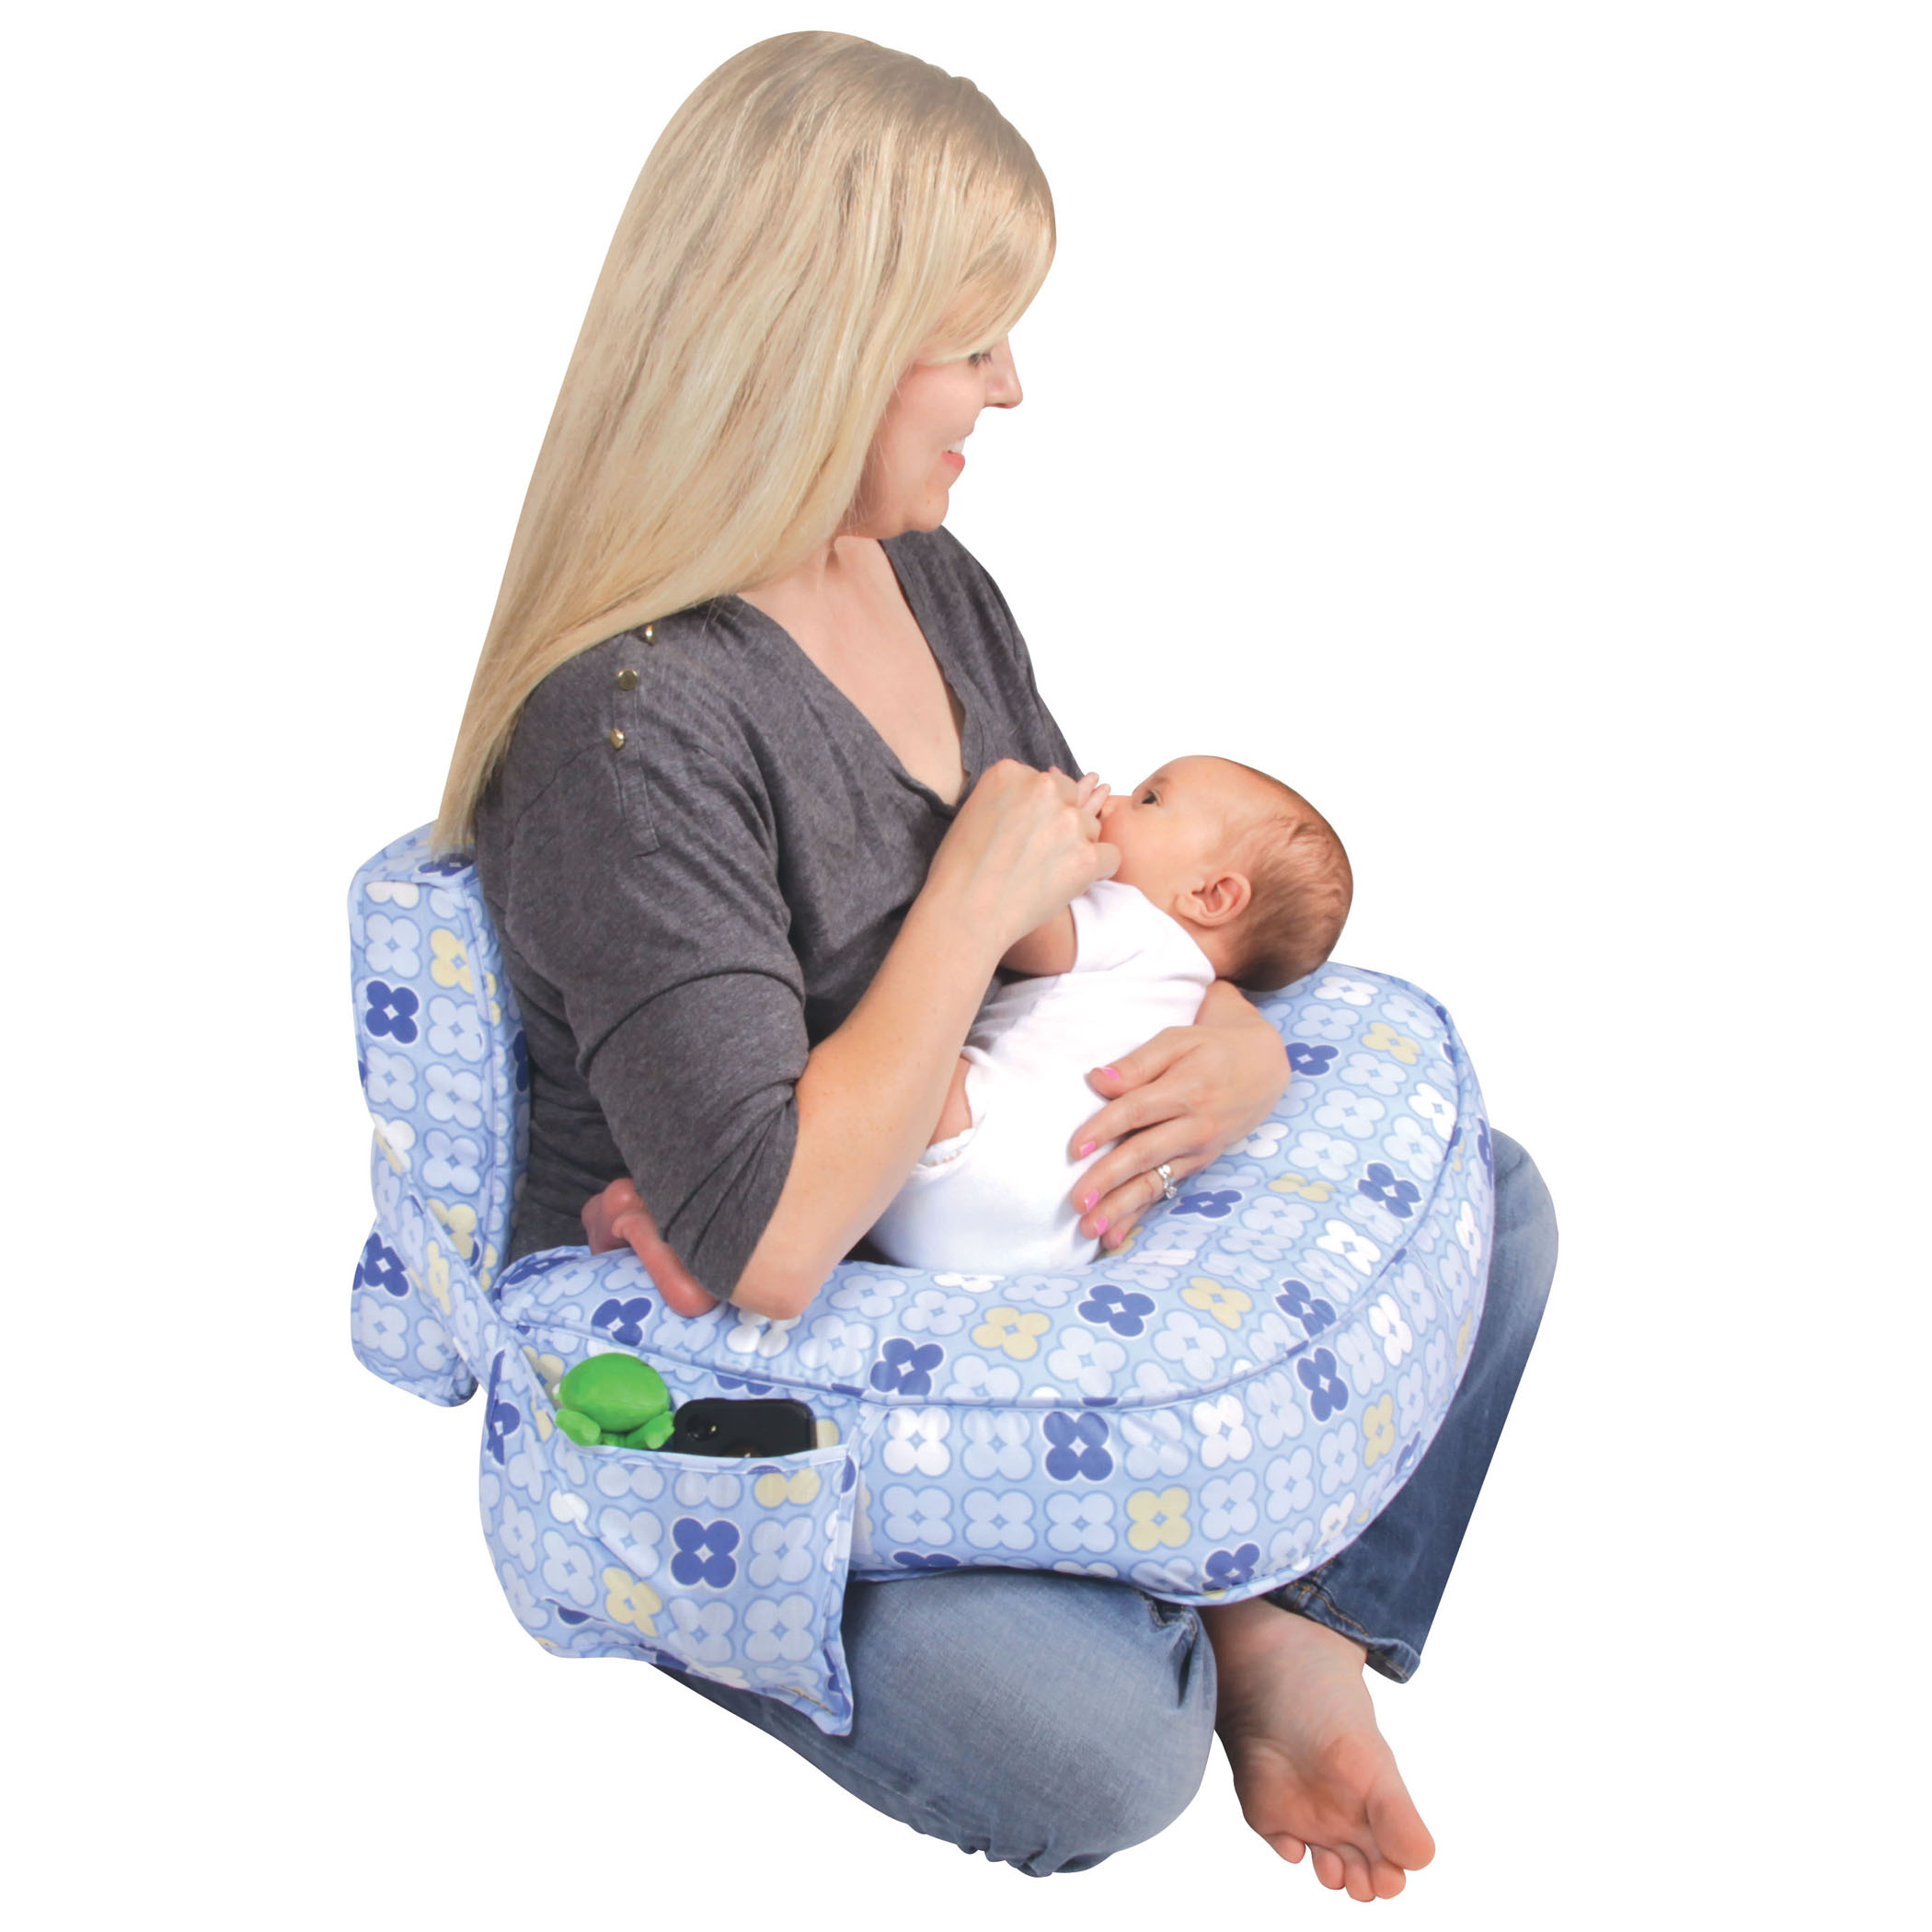 Leachco Ease Back Nursing Pillow with Back Support, Blue 4 Squares by Leachco